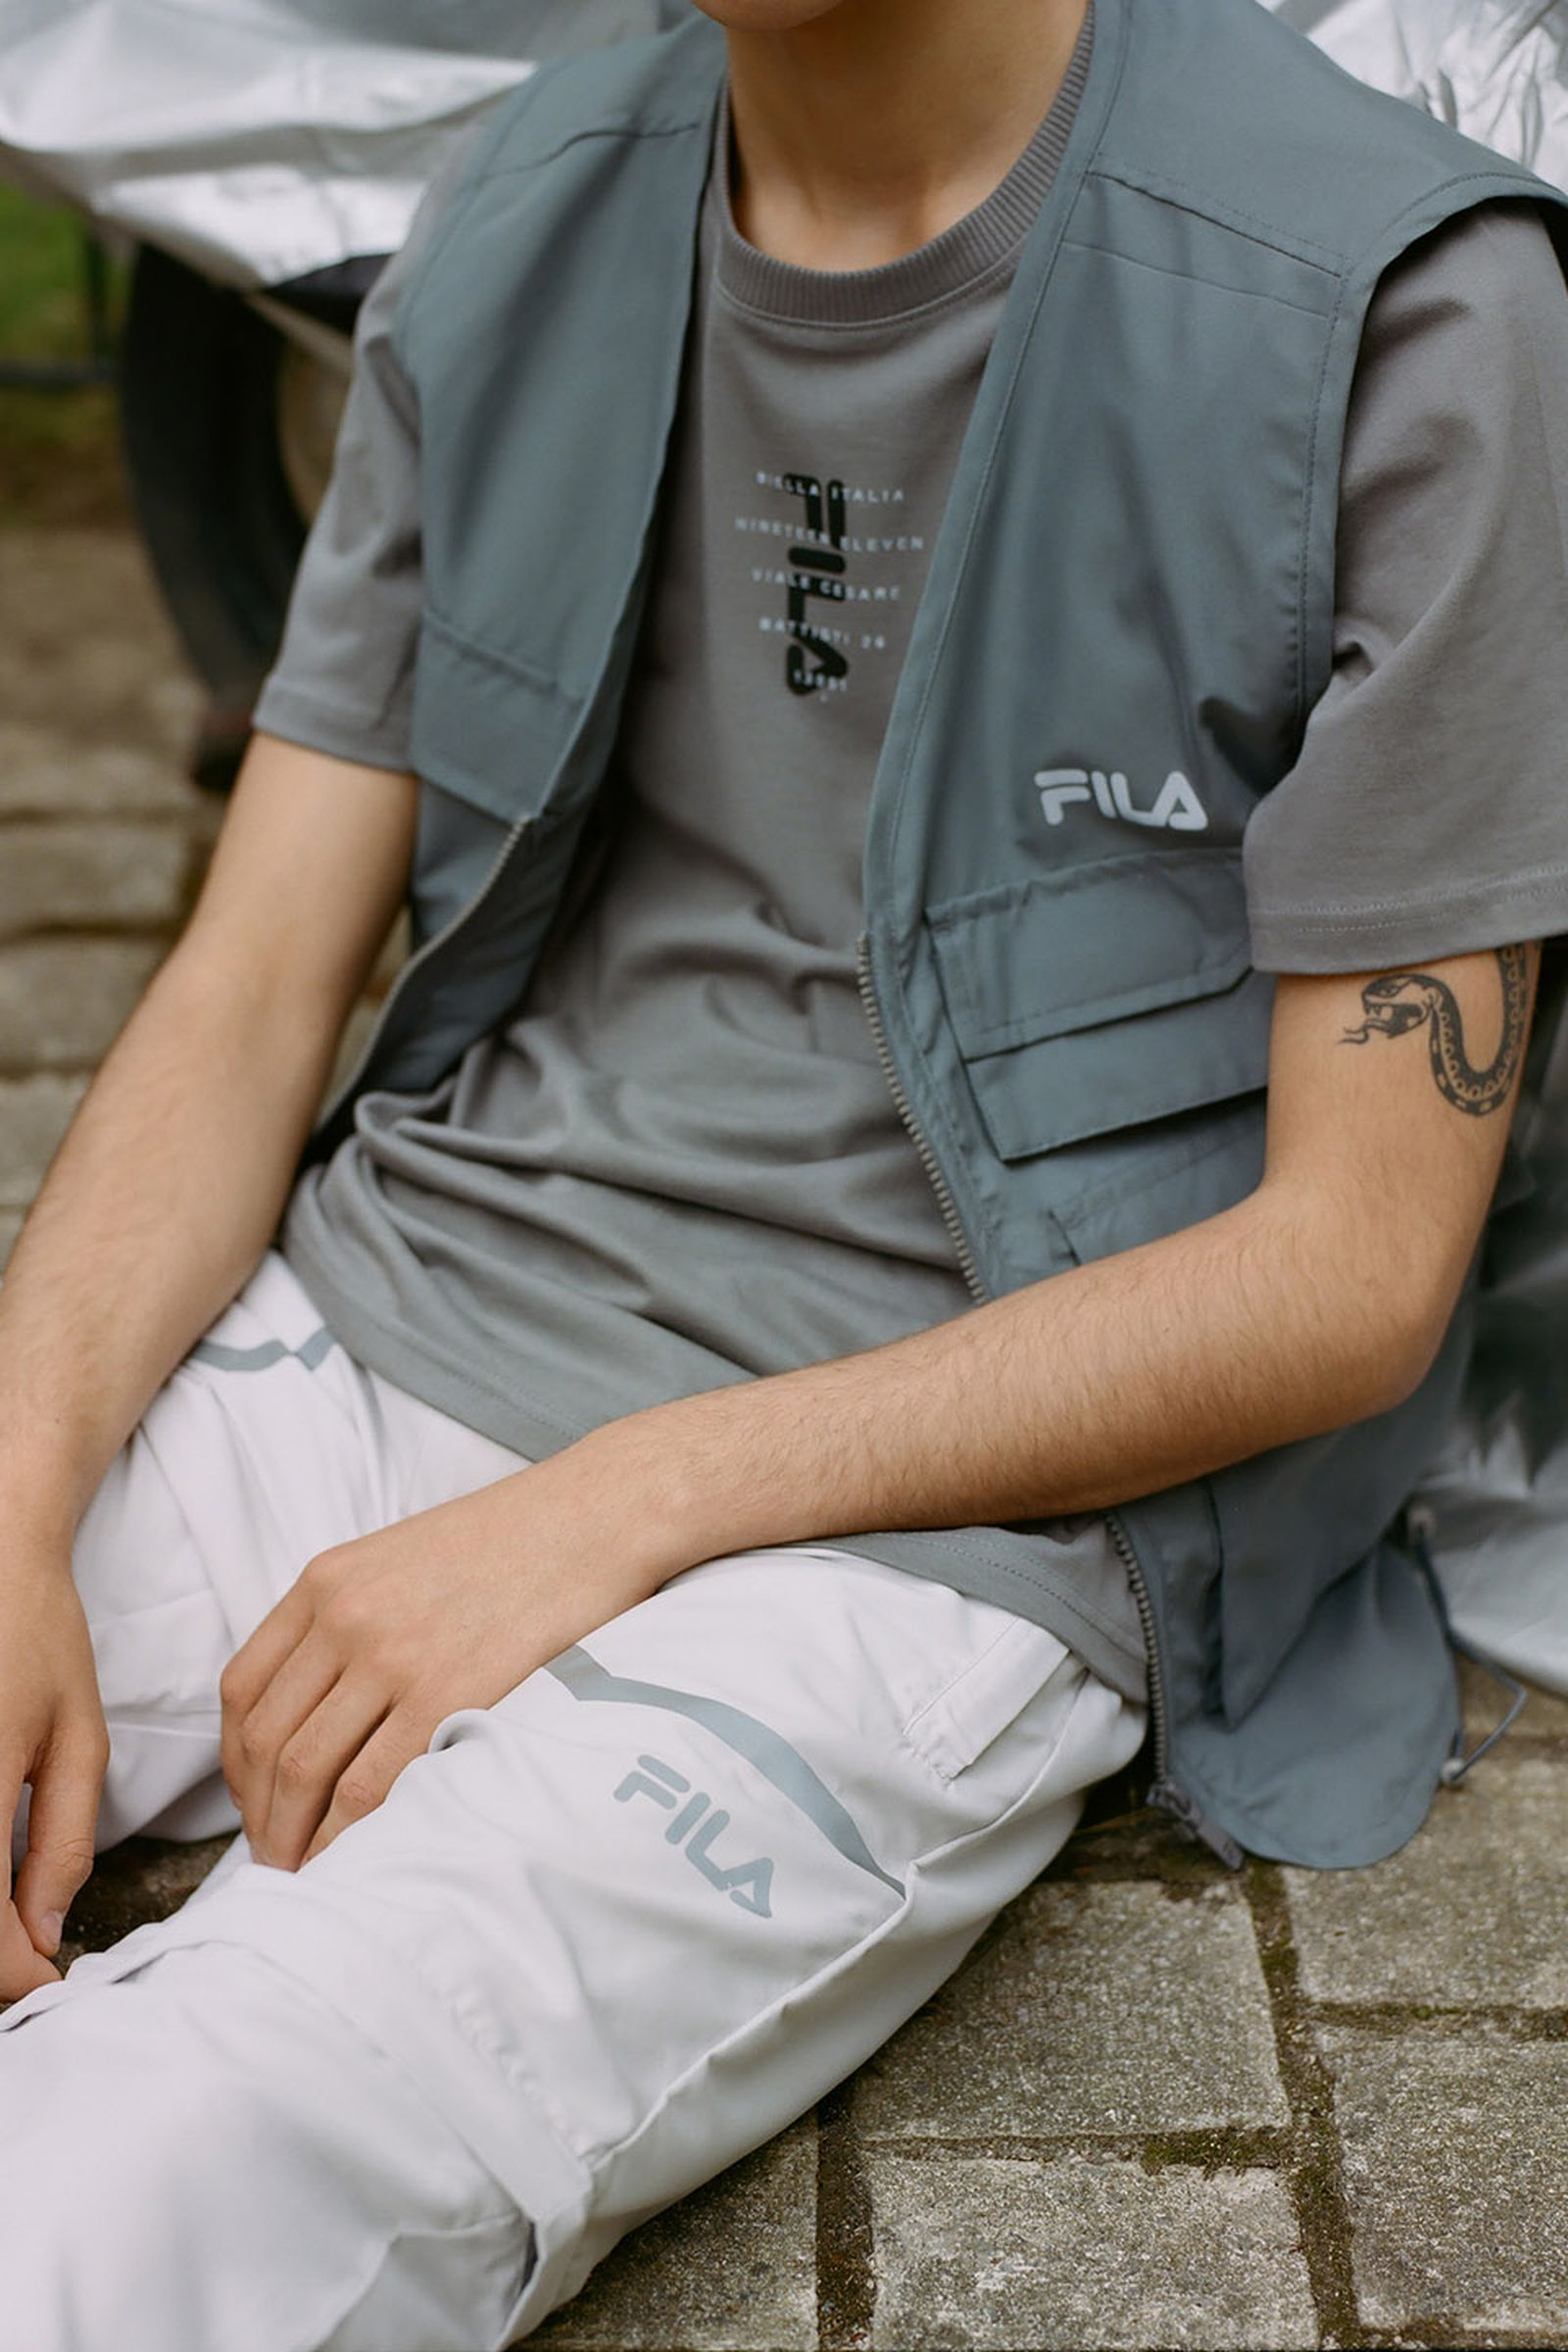 Fila UO urban outfitters utility design